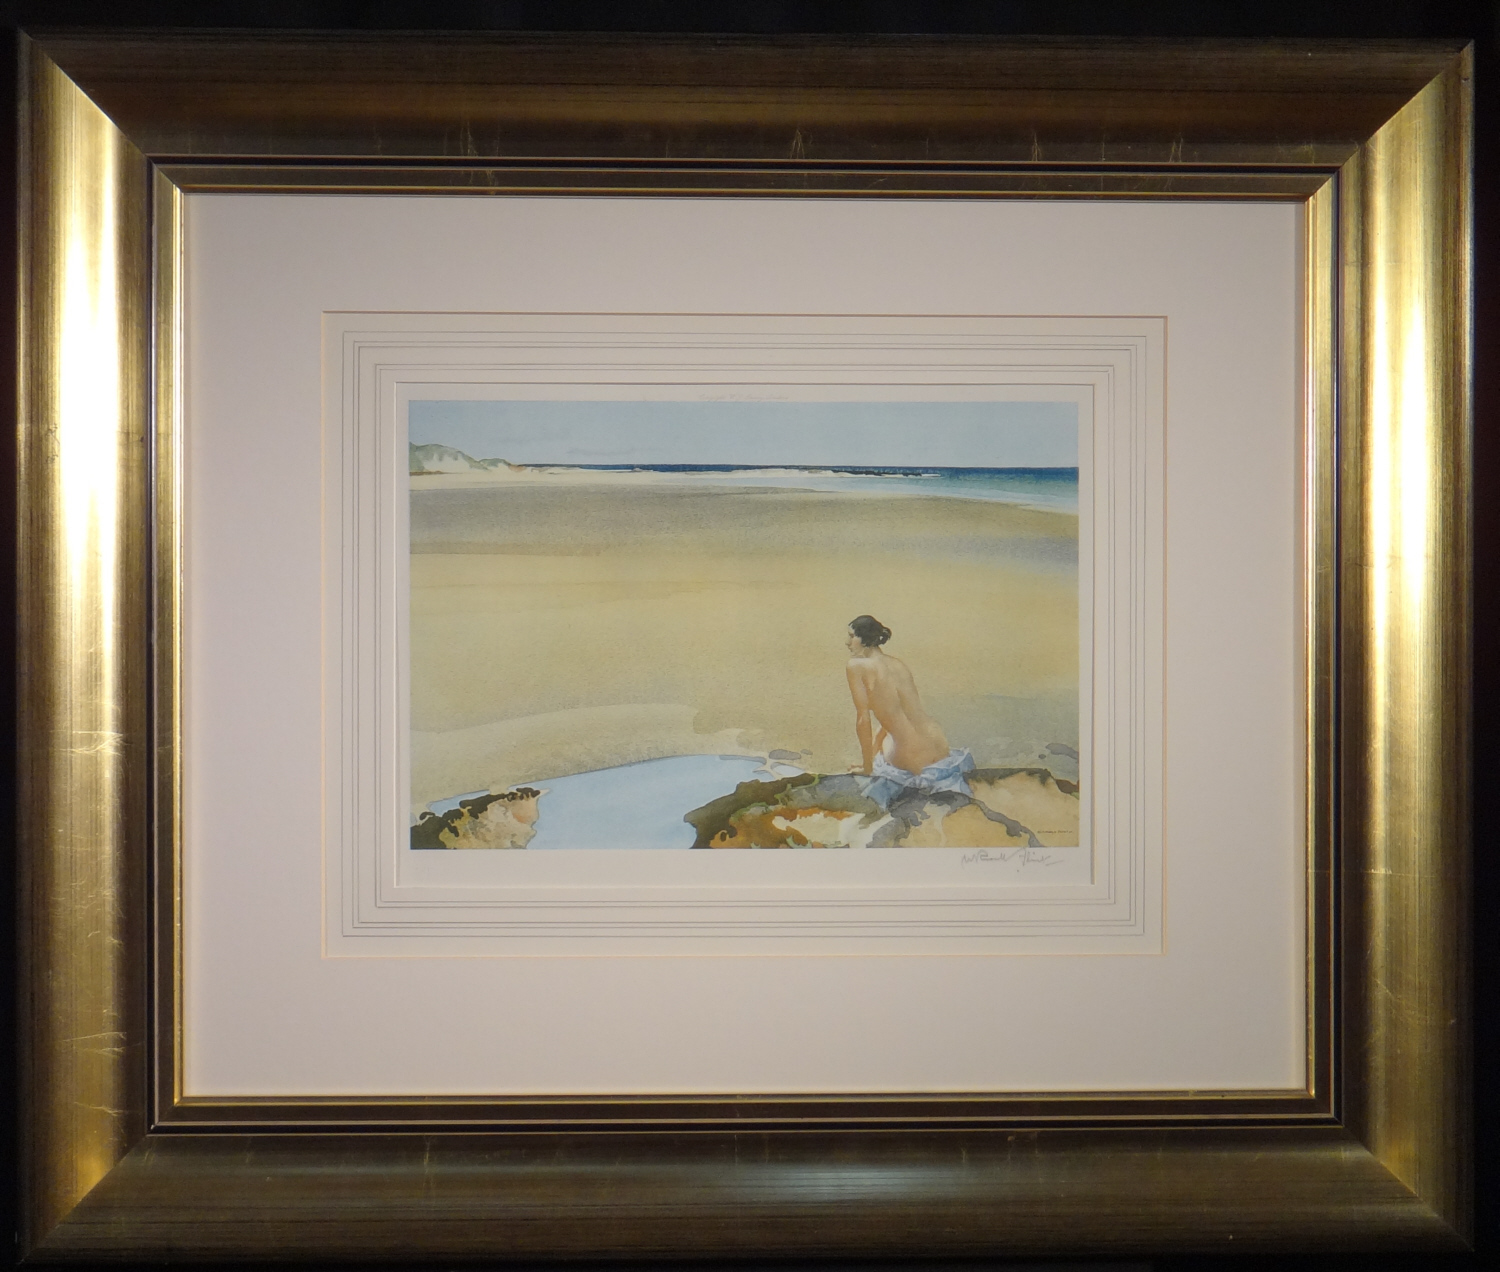 signed limited edition print, Araminta, sir william russell flint